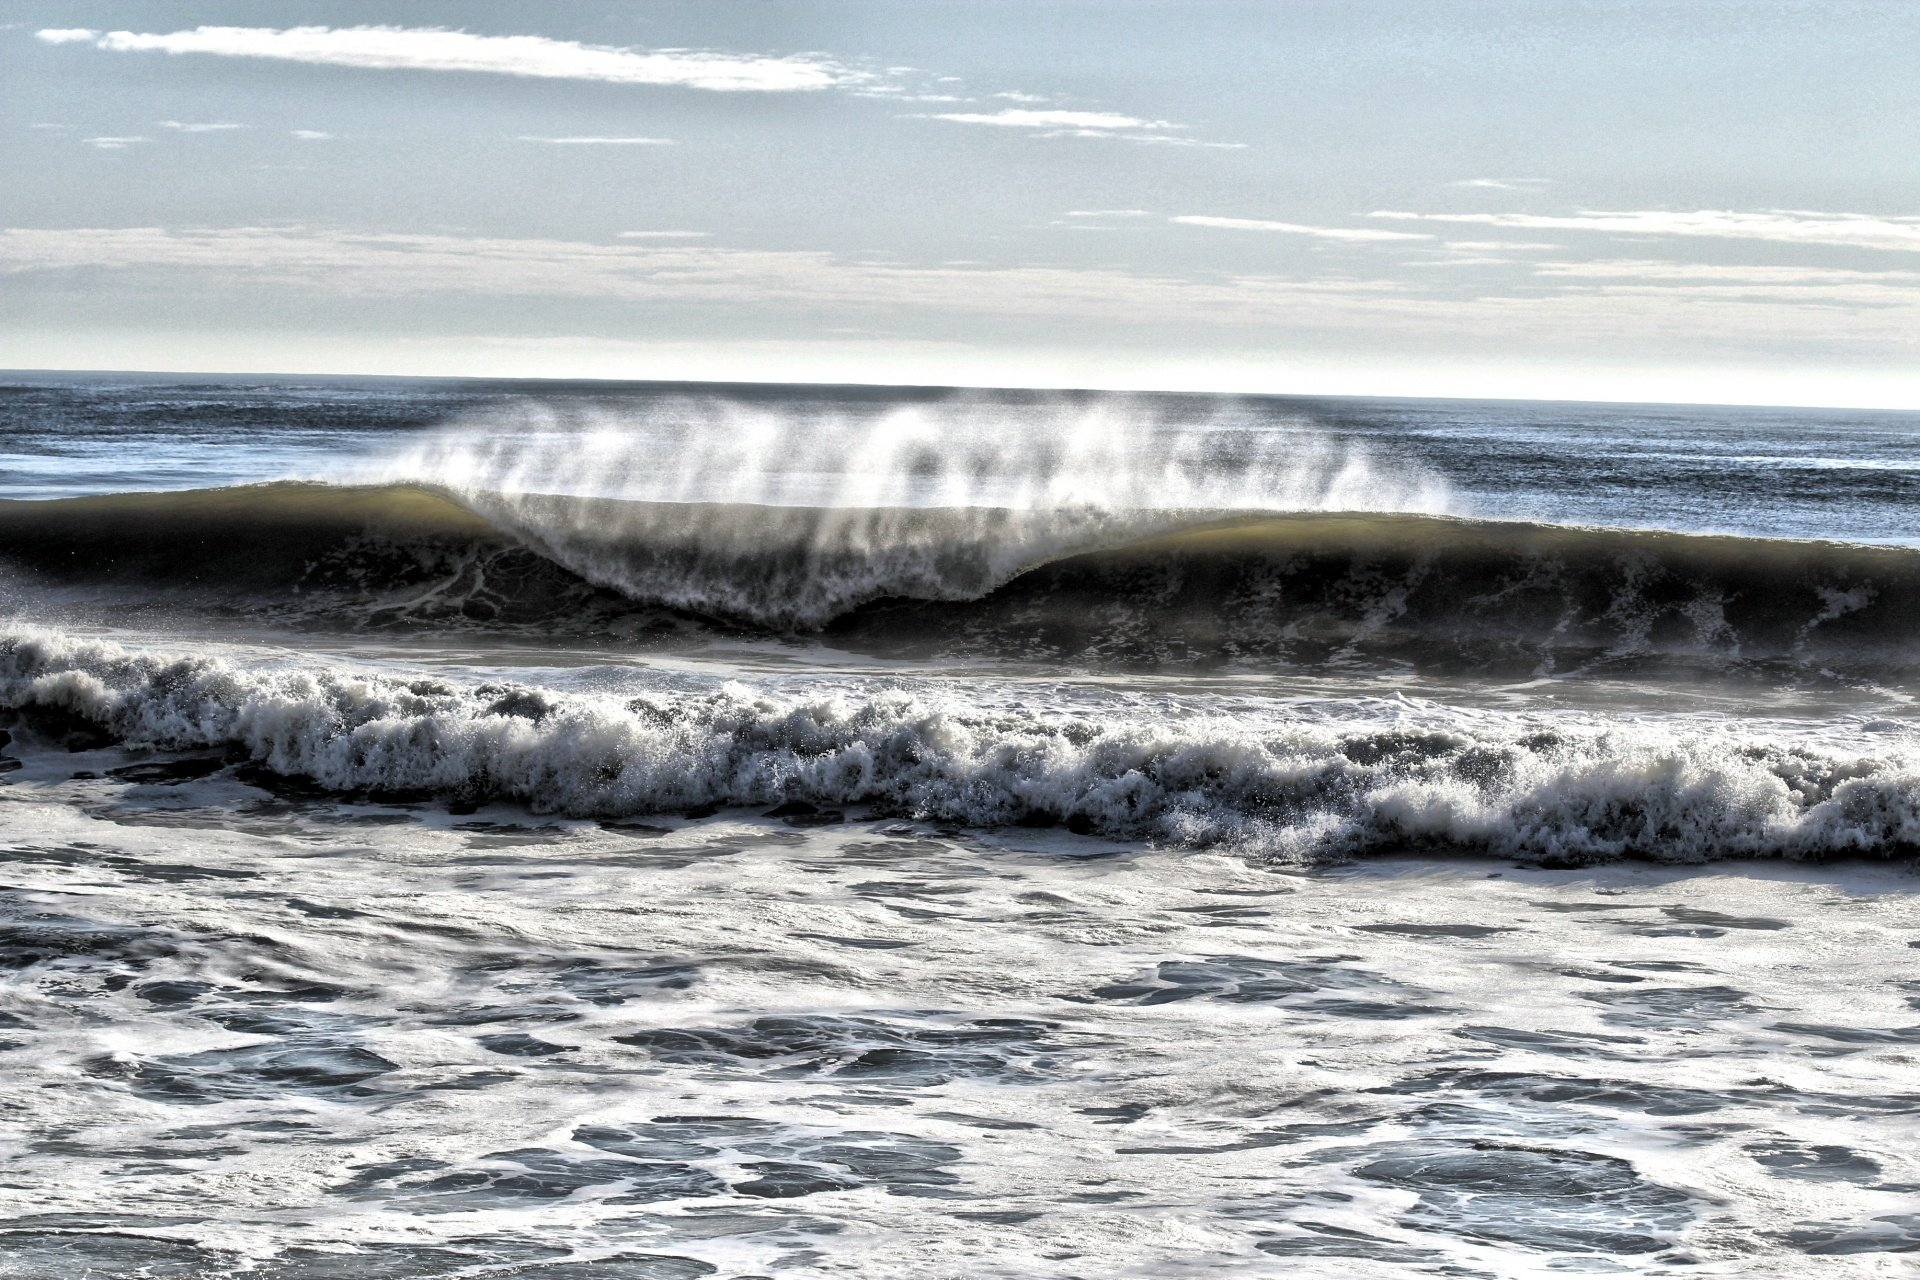 Donald Cooper 's photo of Manasquan